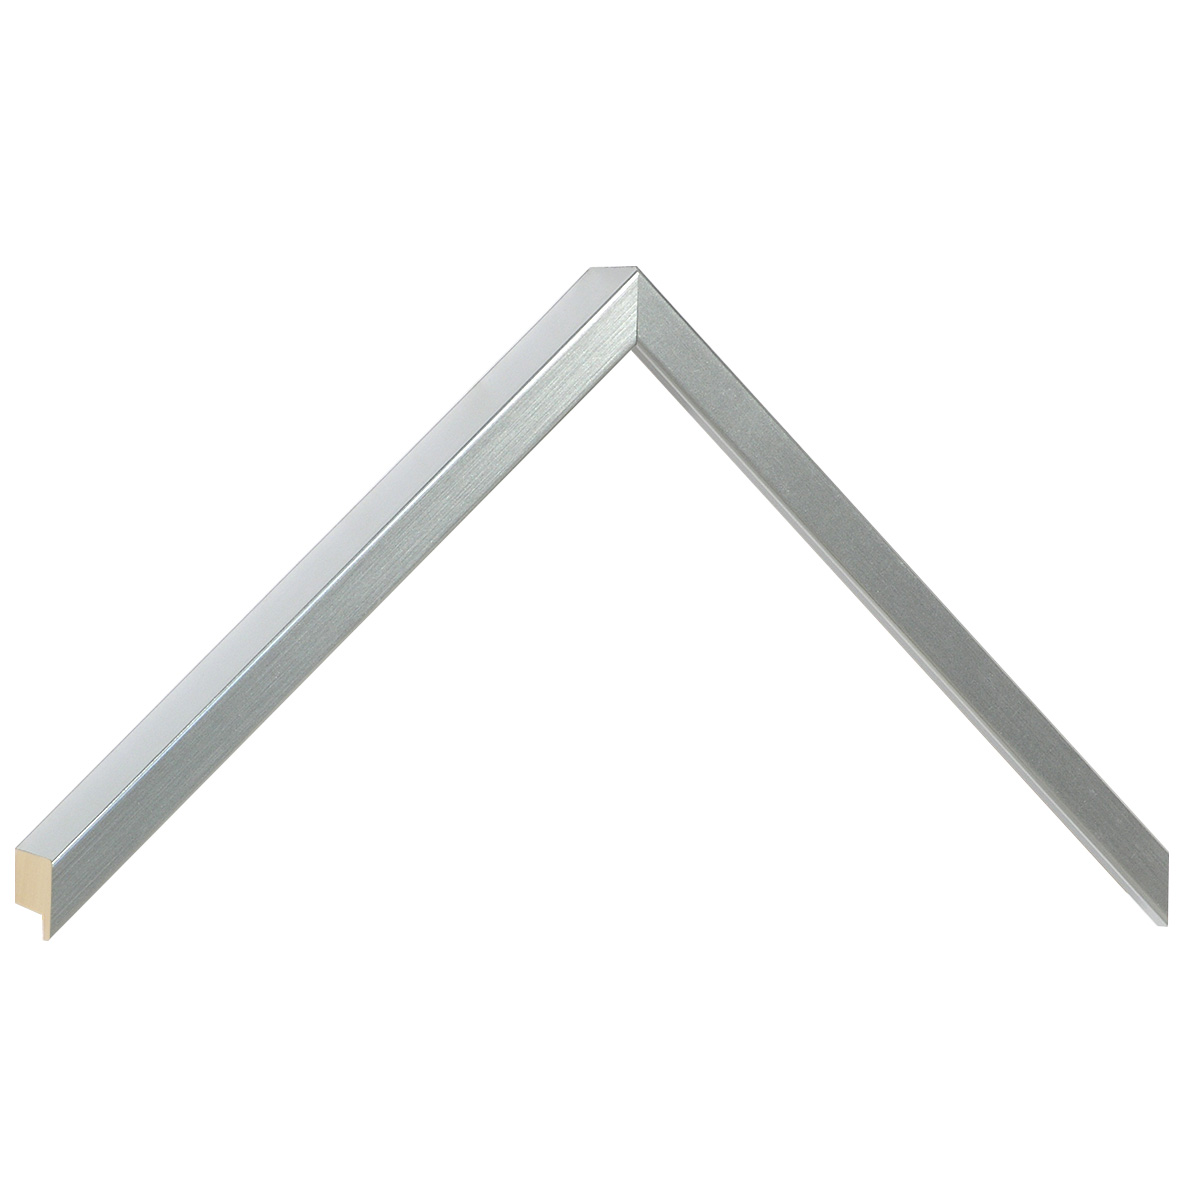 Moulding ayous, width 10mm, height 25mm - silver